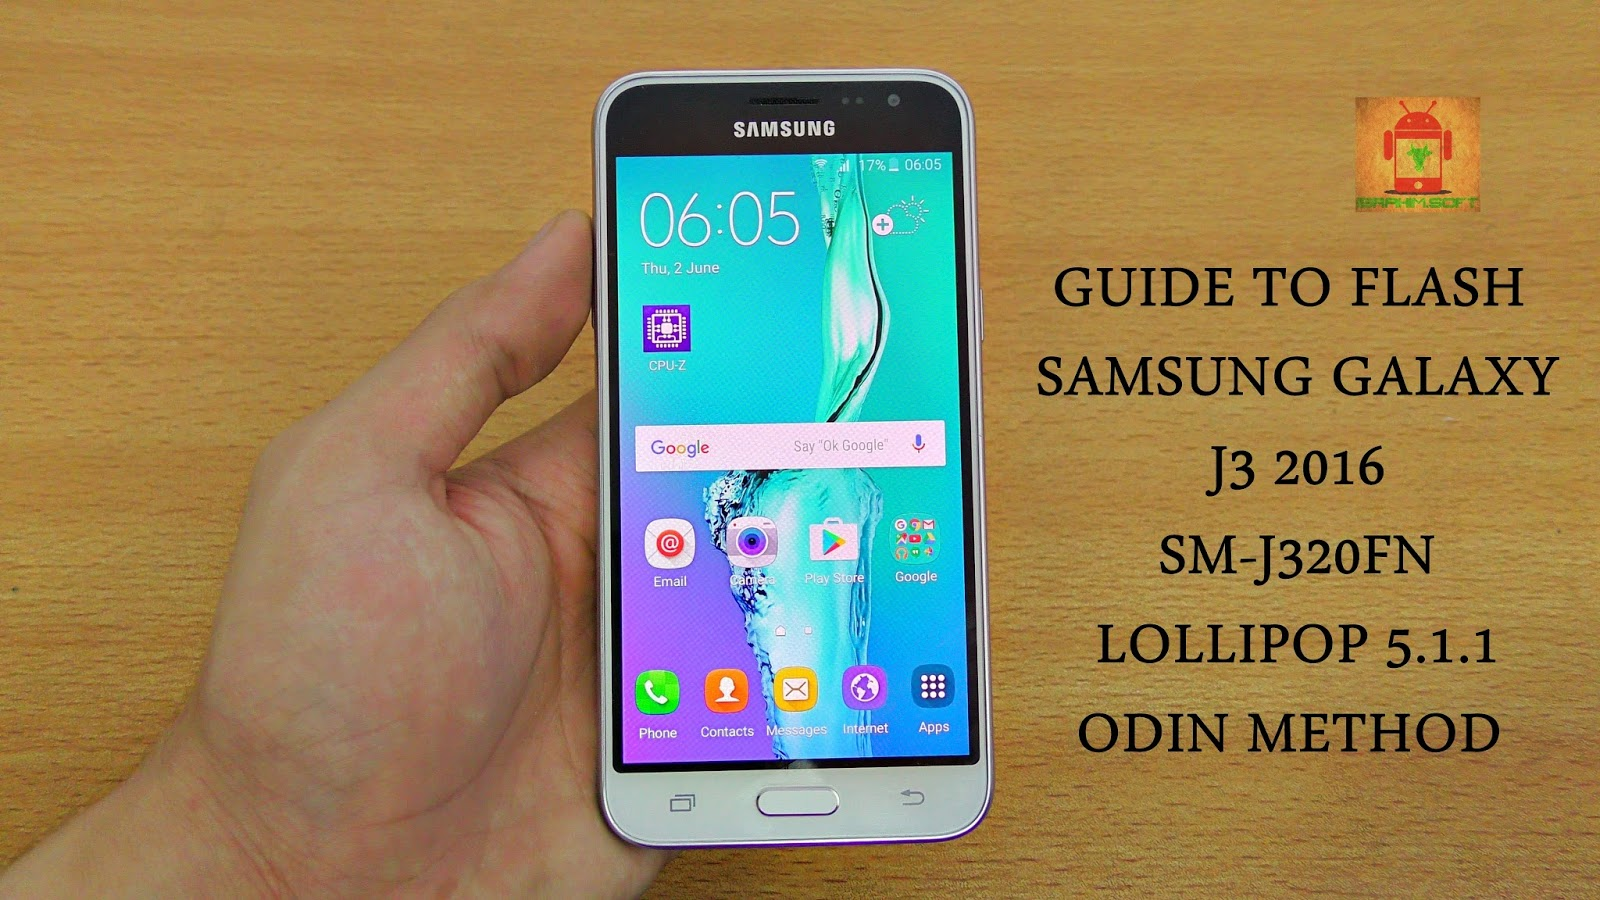 Guide To Flash Samsung Galaxy J3 2016 SM-J320FN Lollipop 5 1 1 Odin